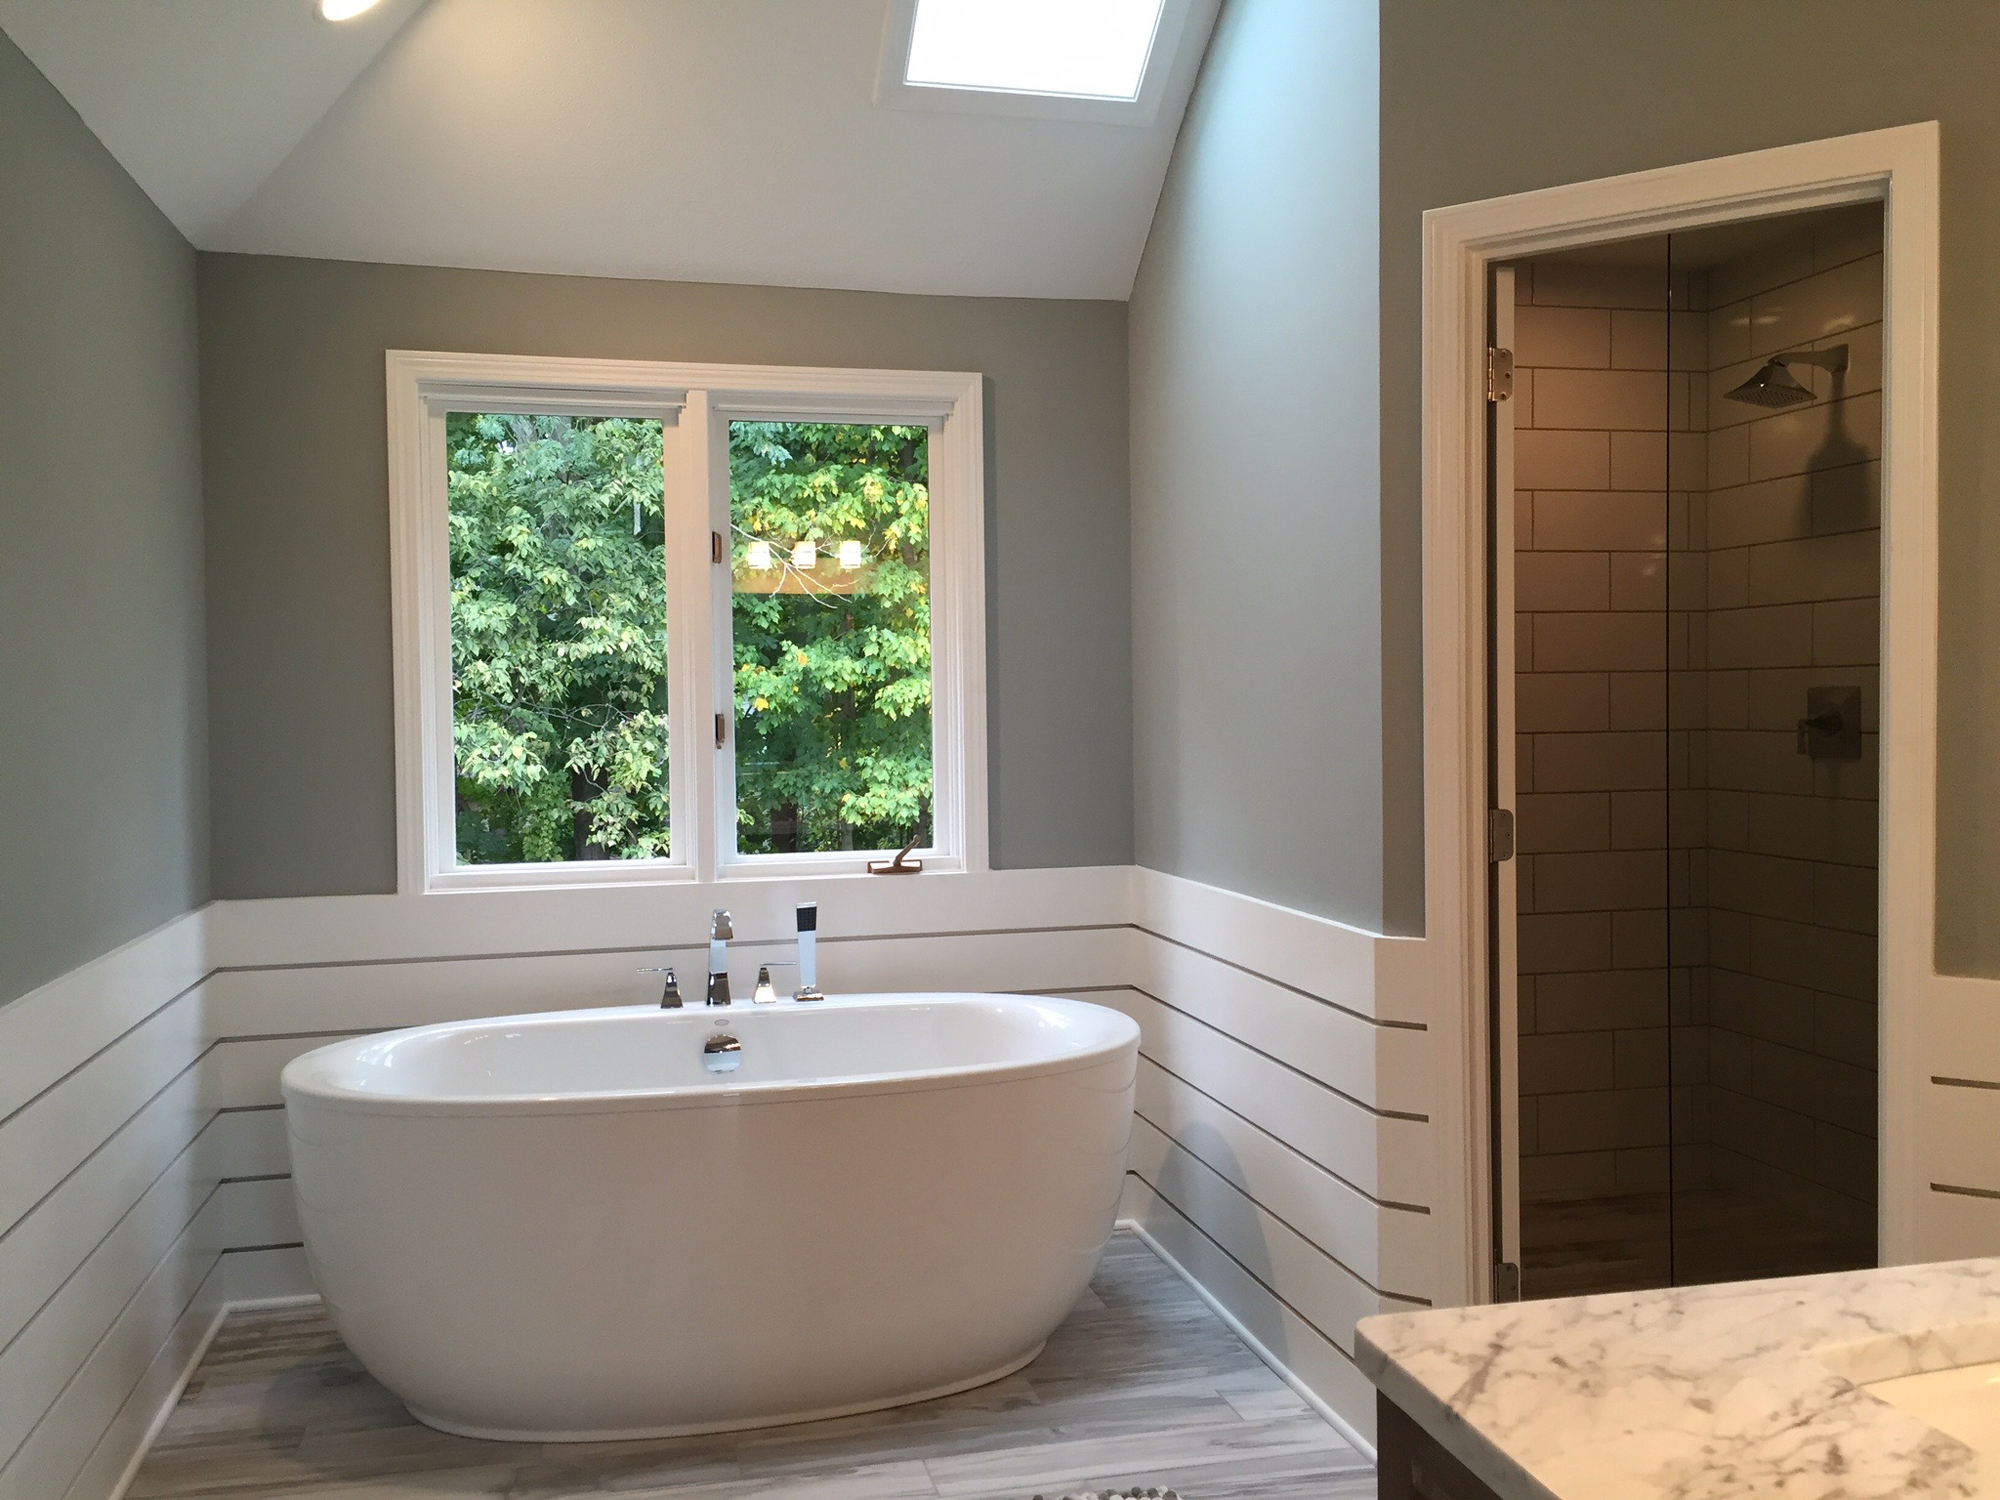 Column luxury tubs add beauty style to bathroom for Free standing tub and shower